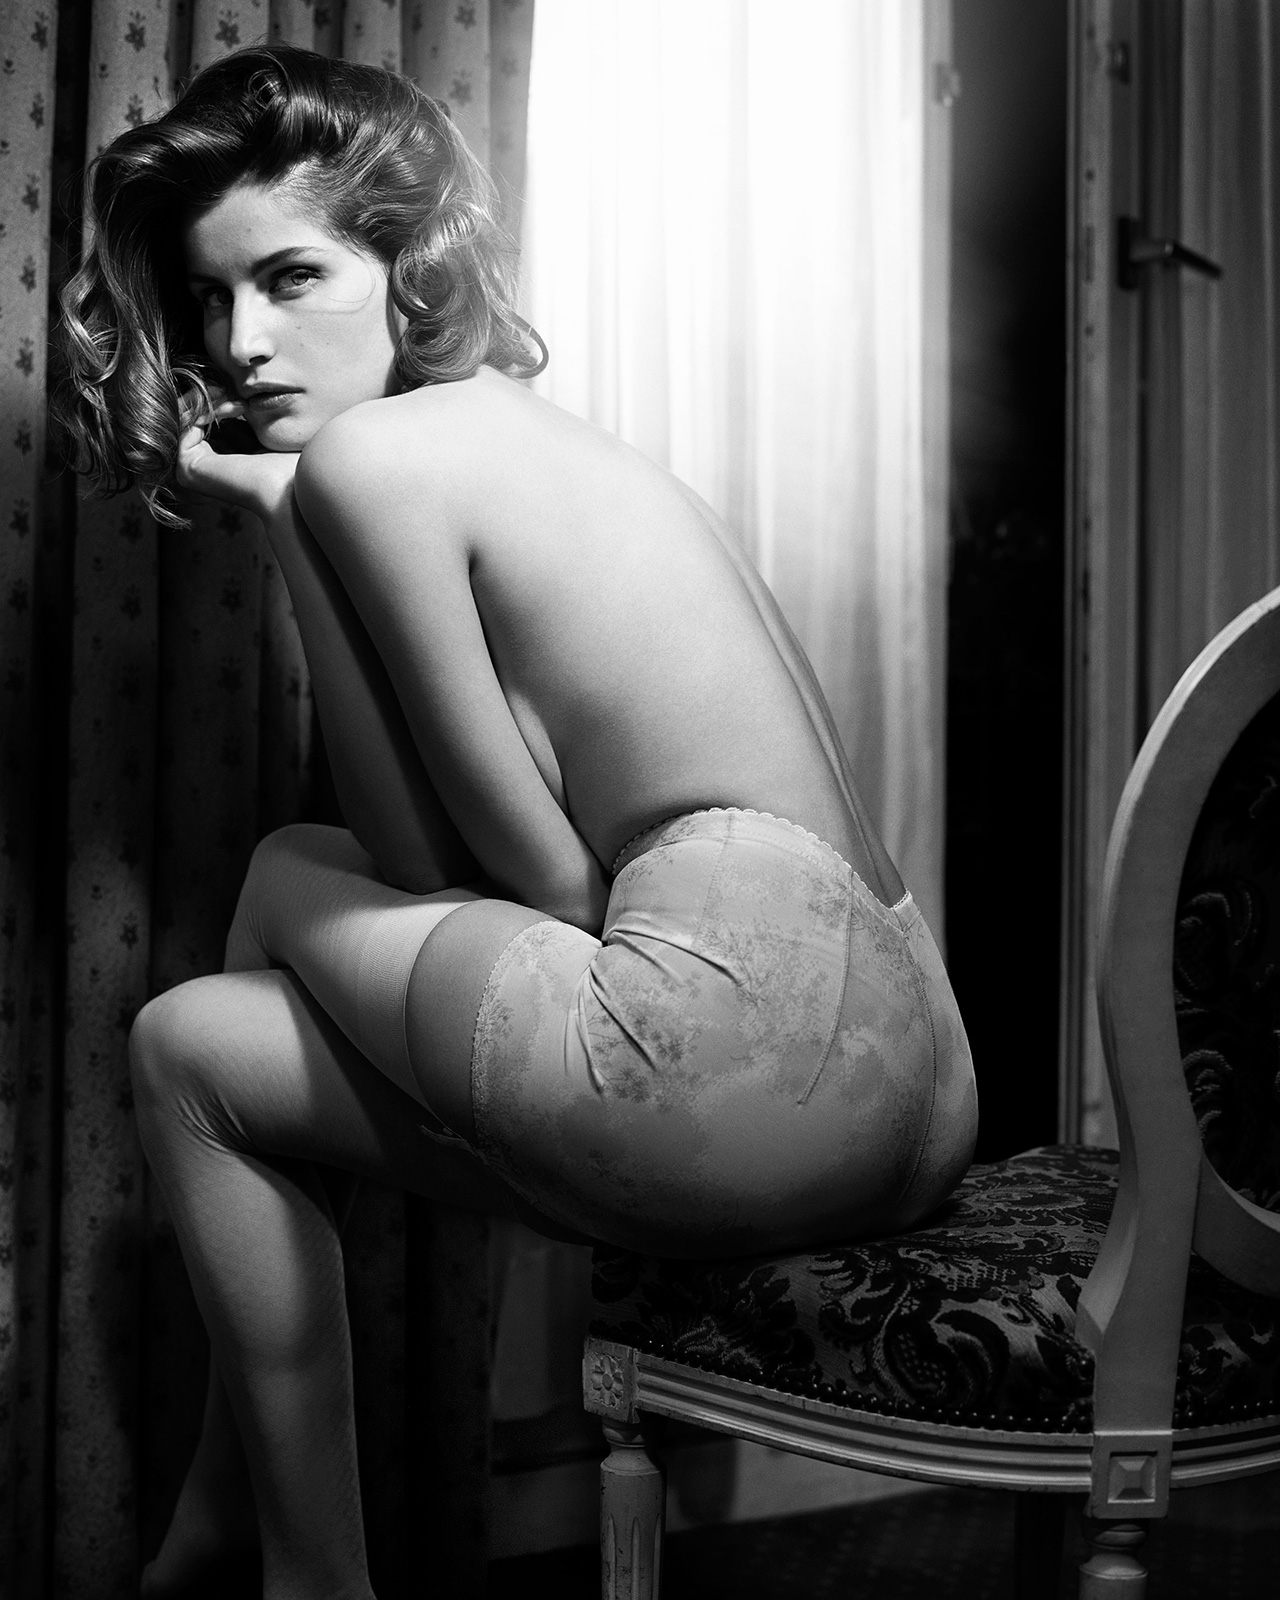 Vincent-Peters-exposition-hune-paris-folkr-11